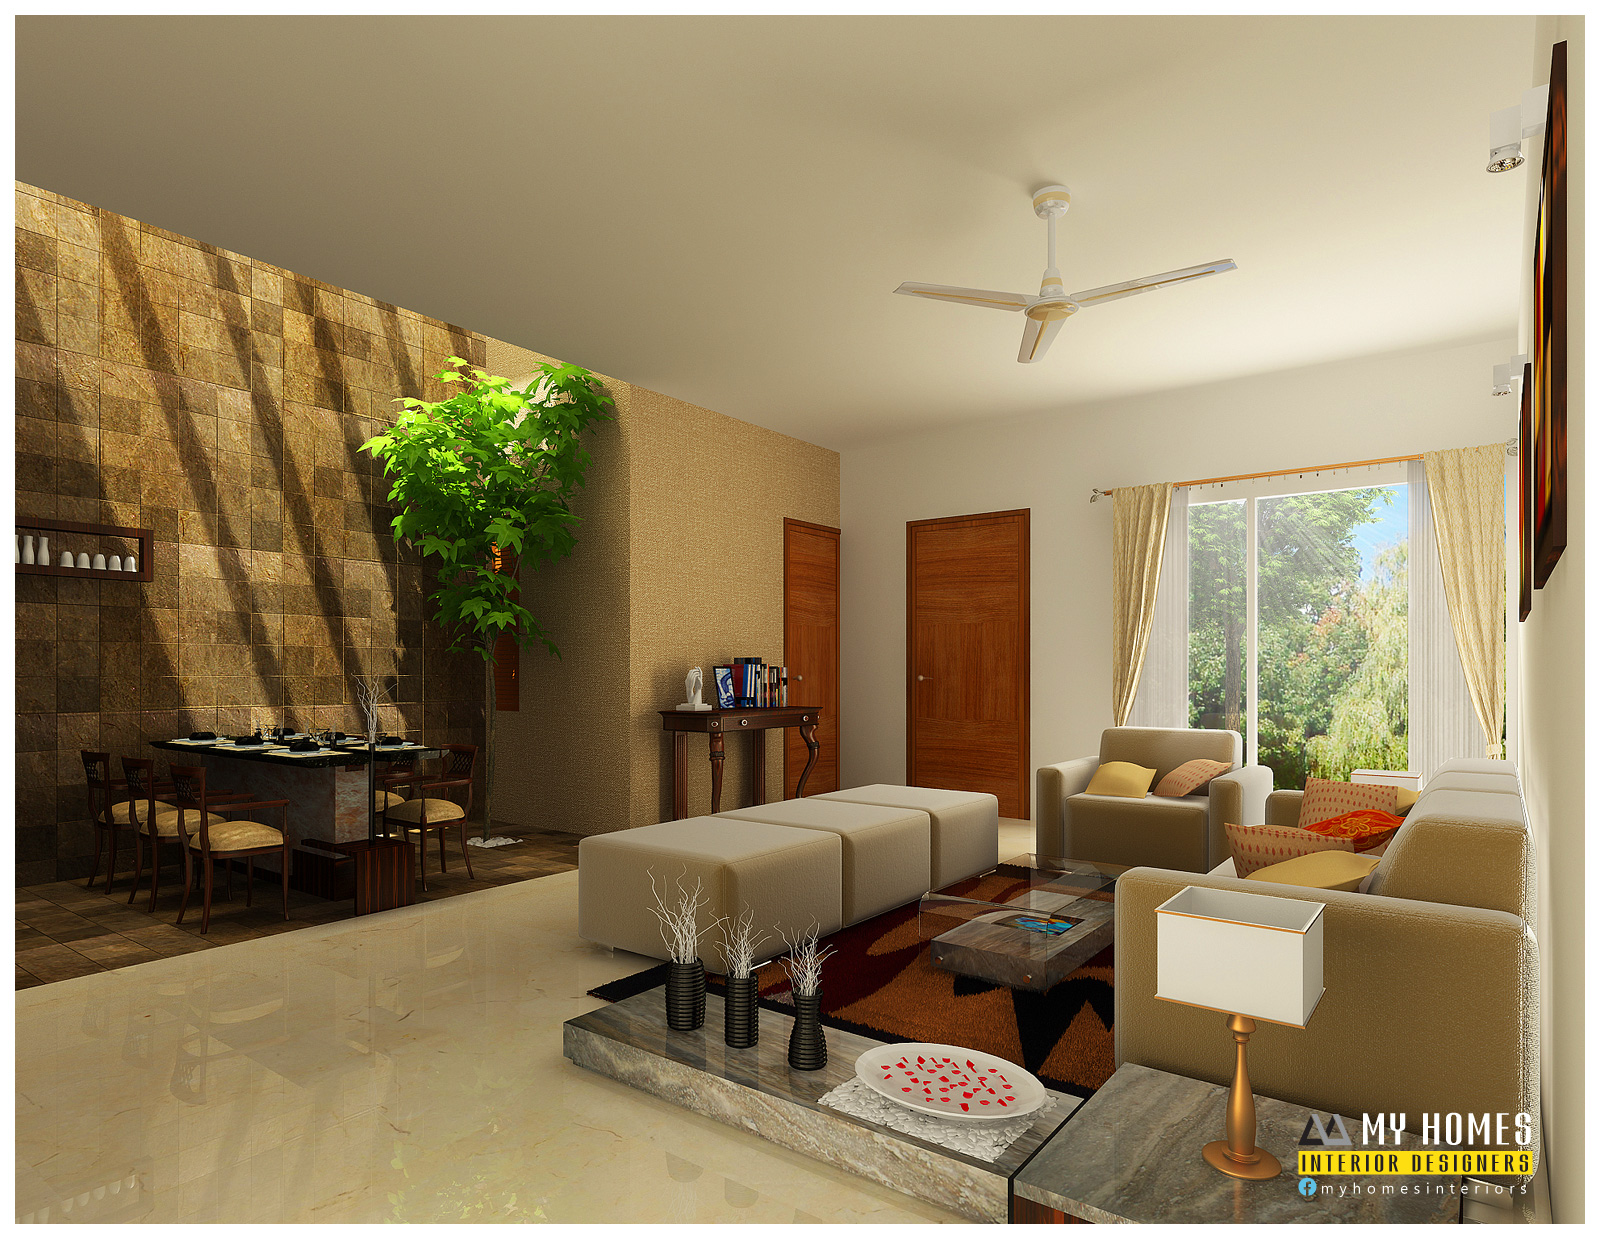 Kerala Home Design Interior Best Decoration Company Thrissur - Kerala Home Interior Designs